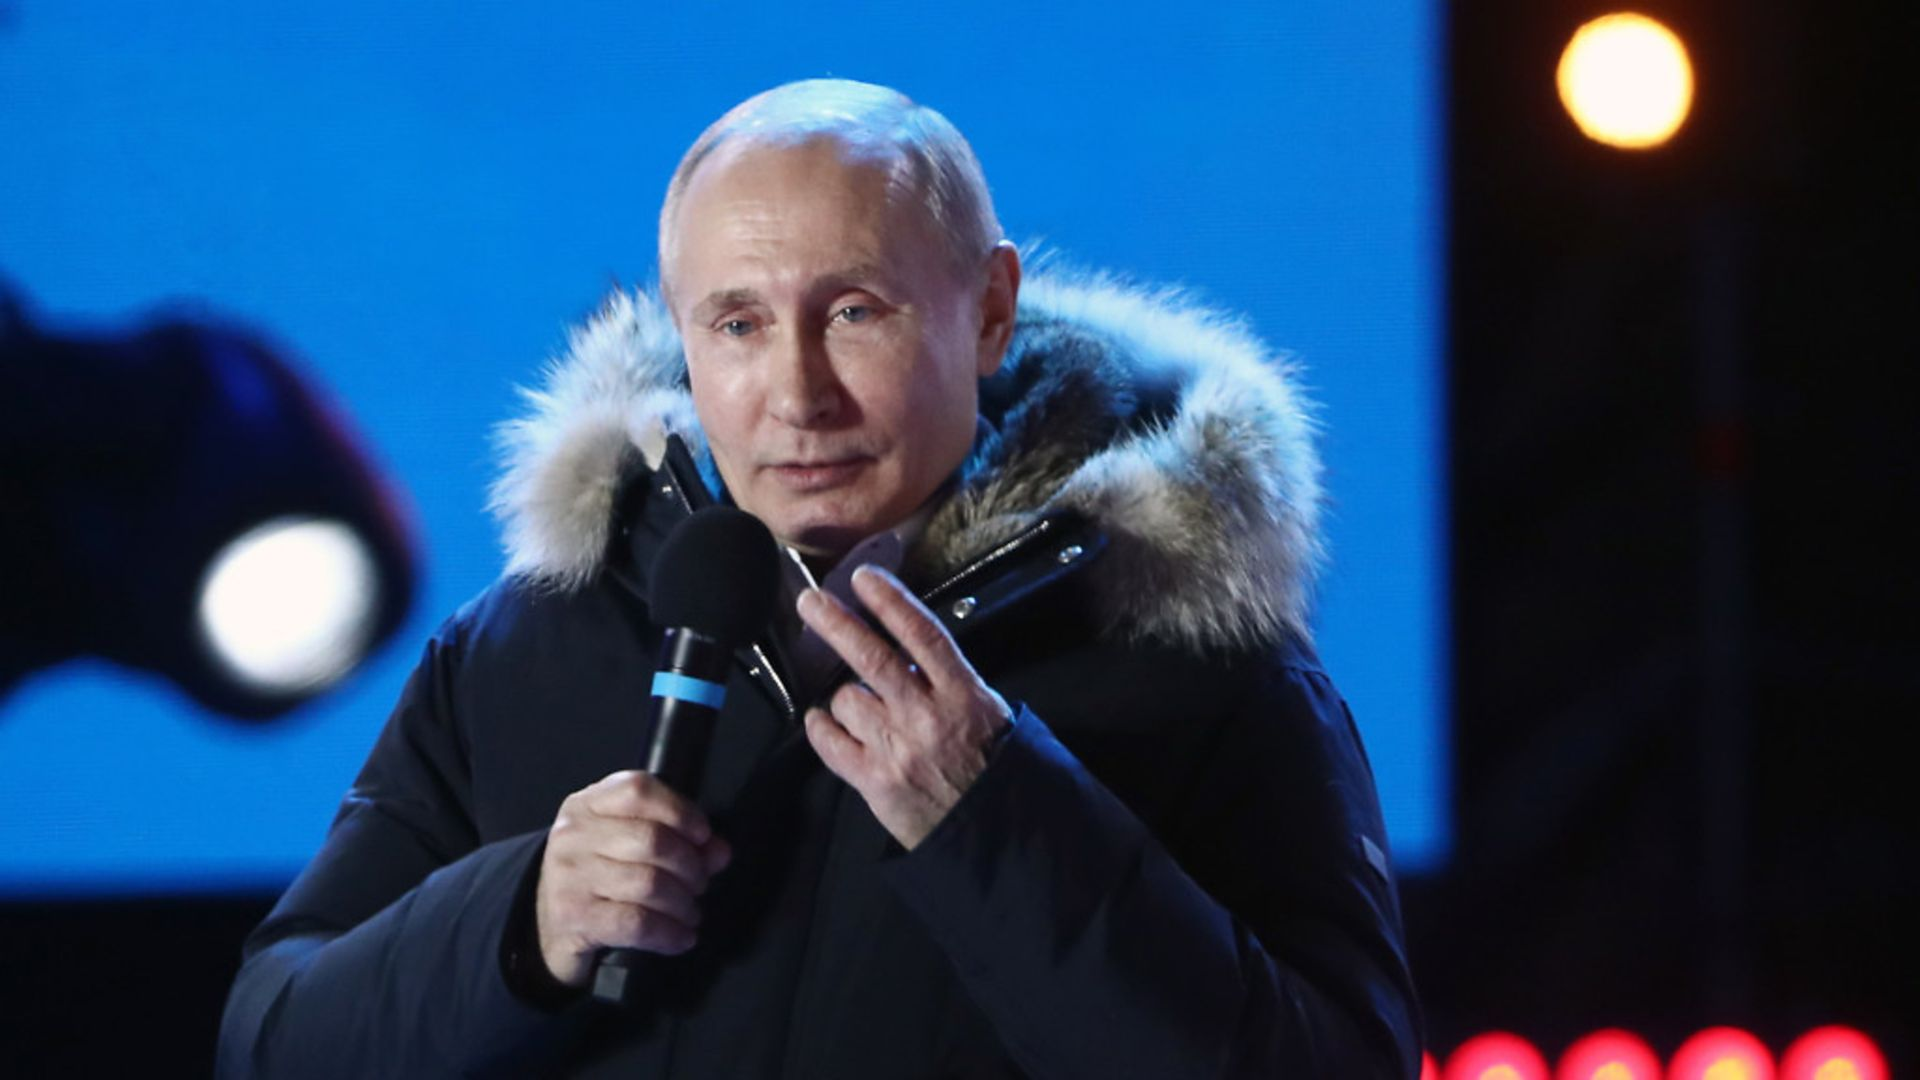 Russian president Vladimir Putin (question two) - Credit: Tass/PA Images